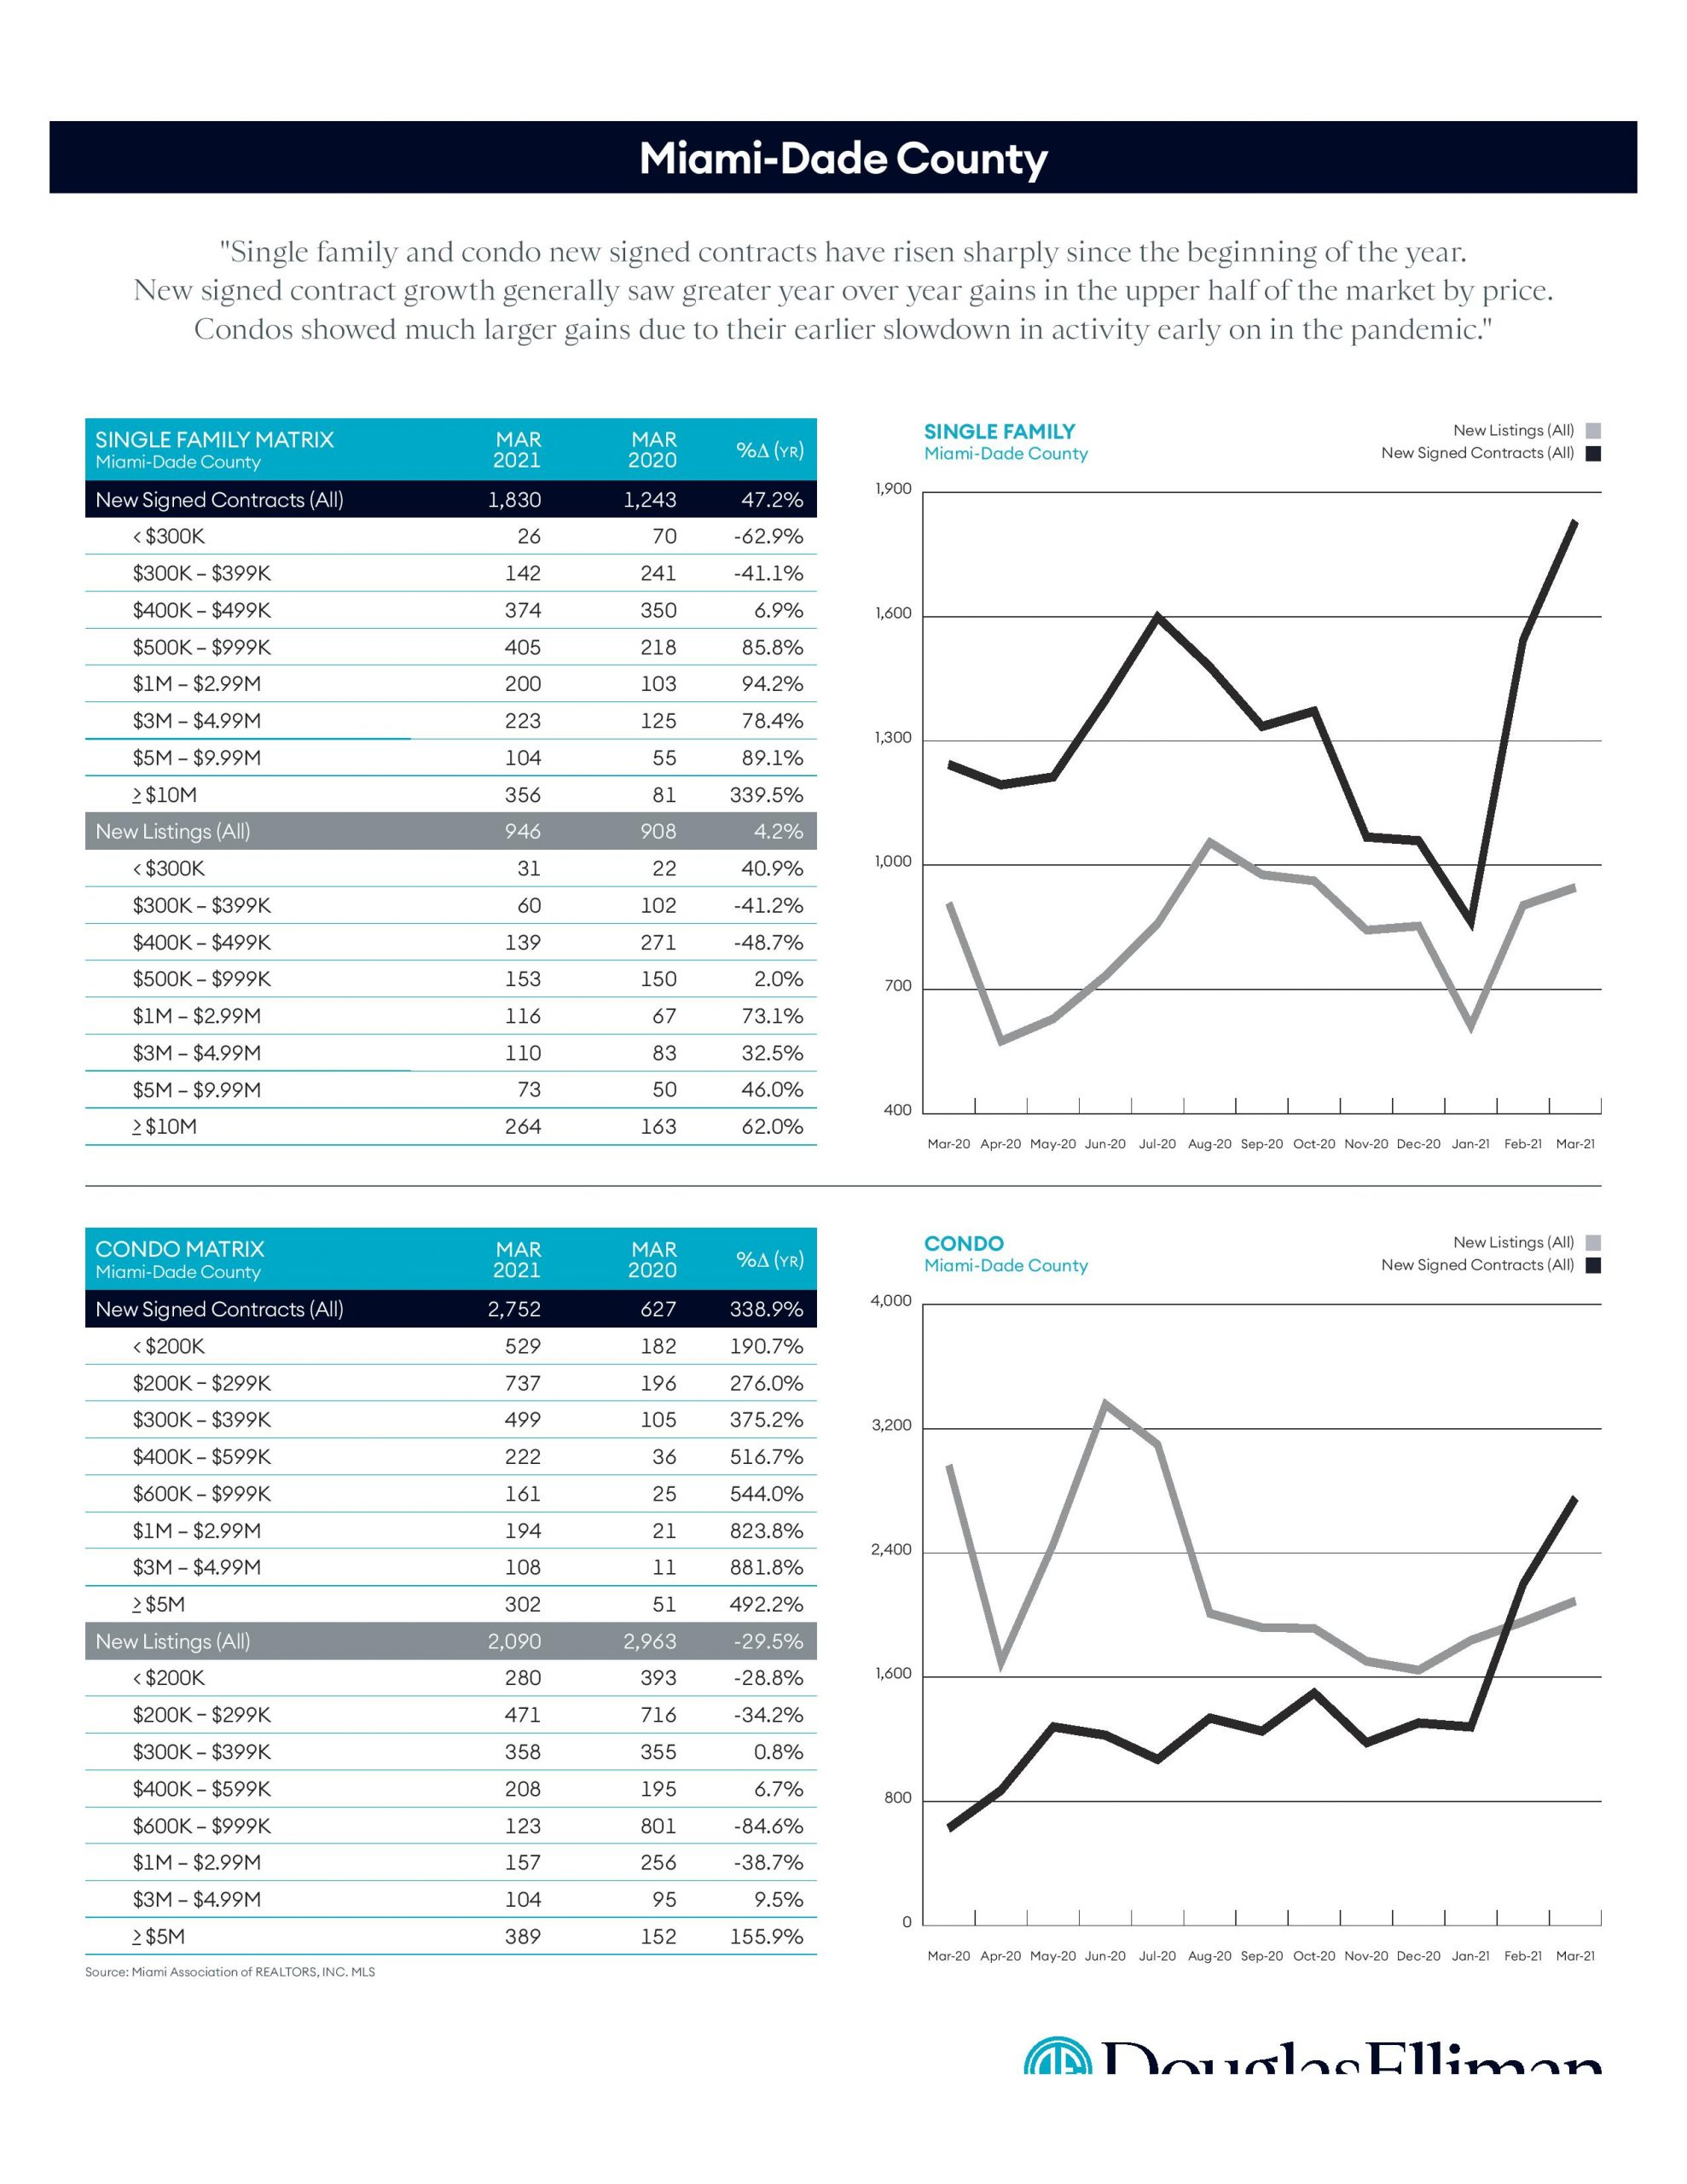 Miami-Dade County Q1 Residential Sales Report